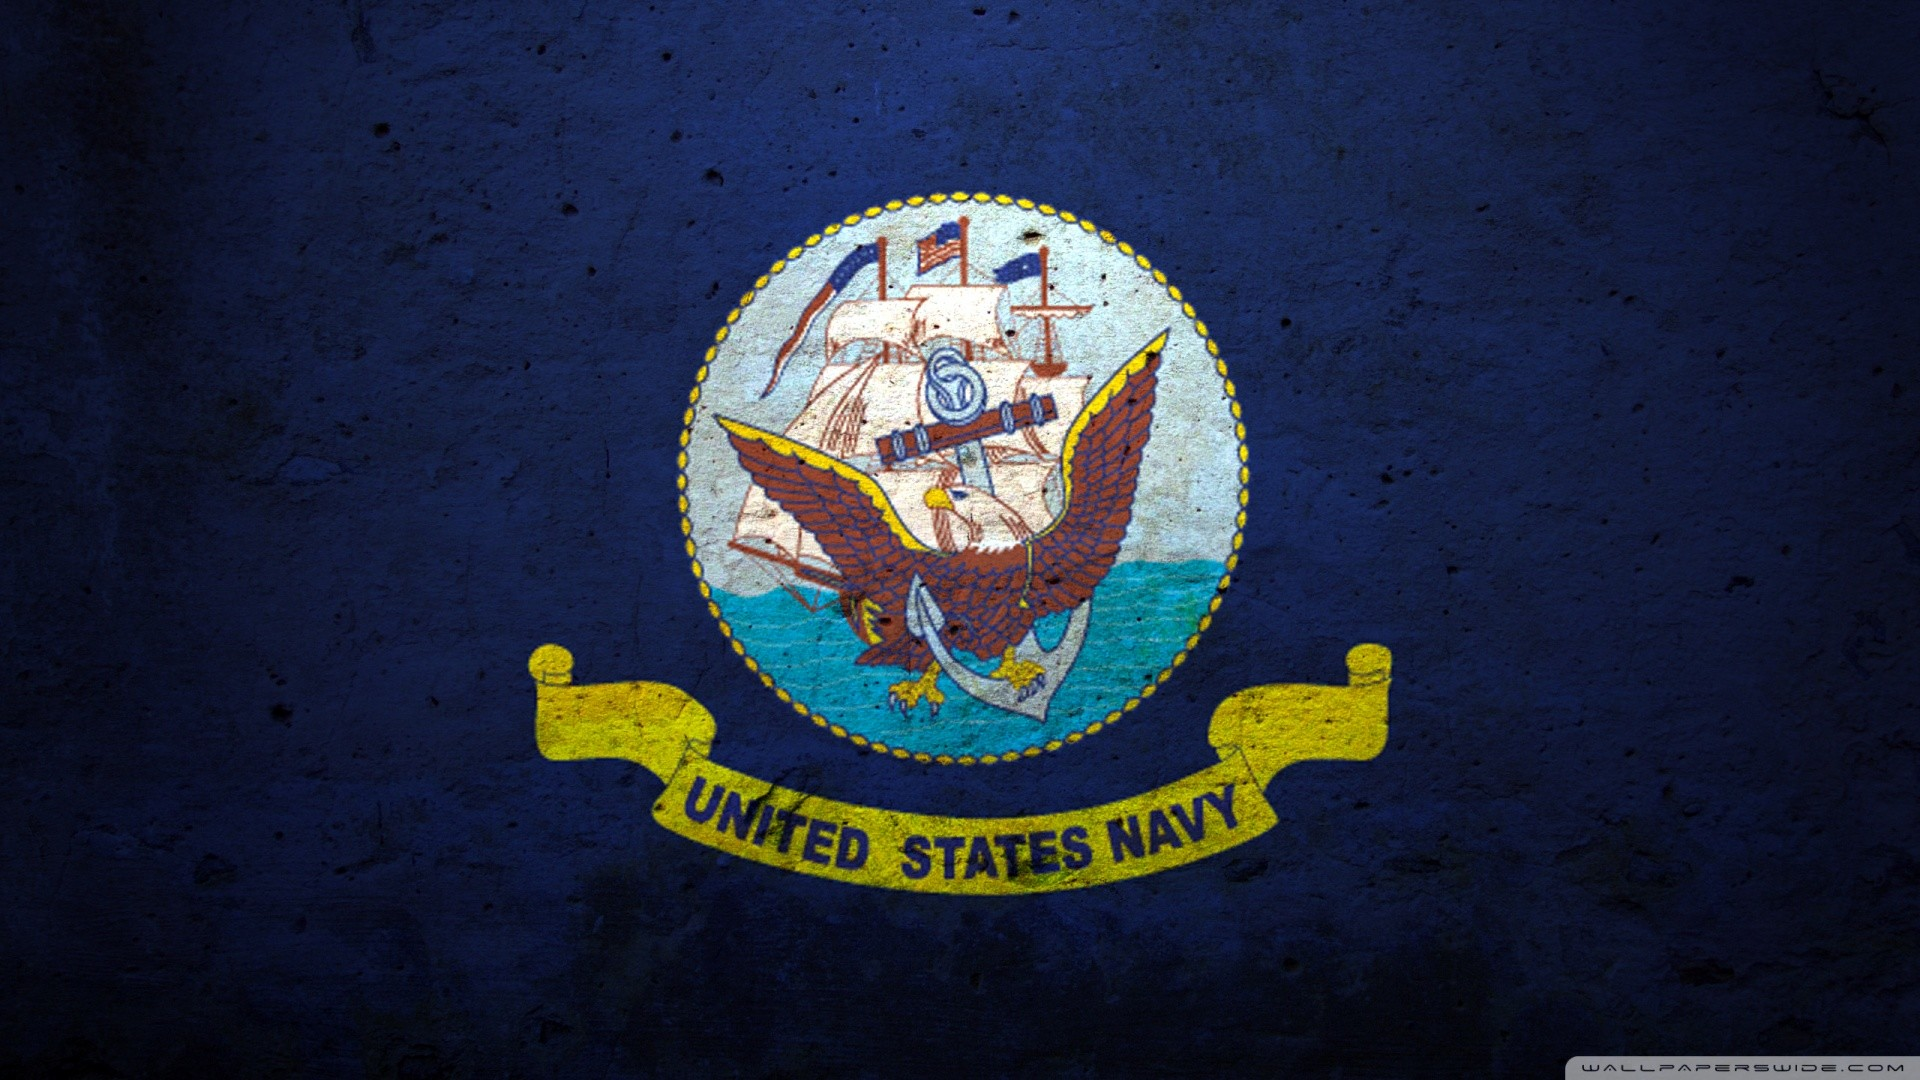 United States Navy Wallpaper Flag, Of, The, United,